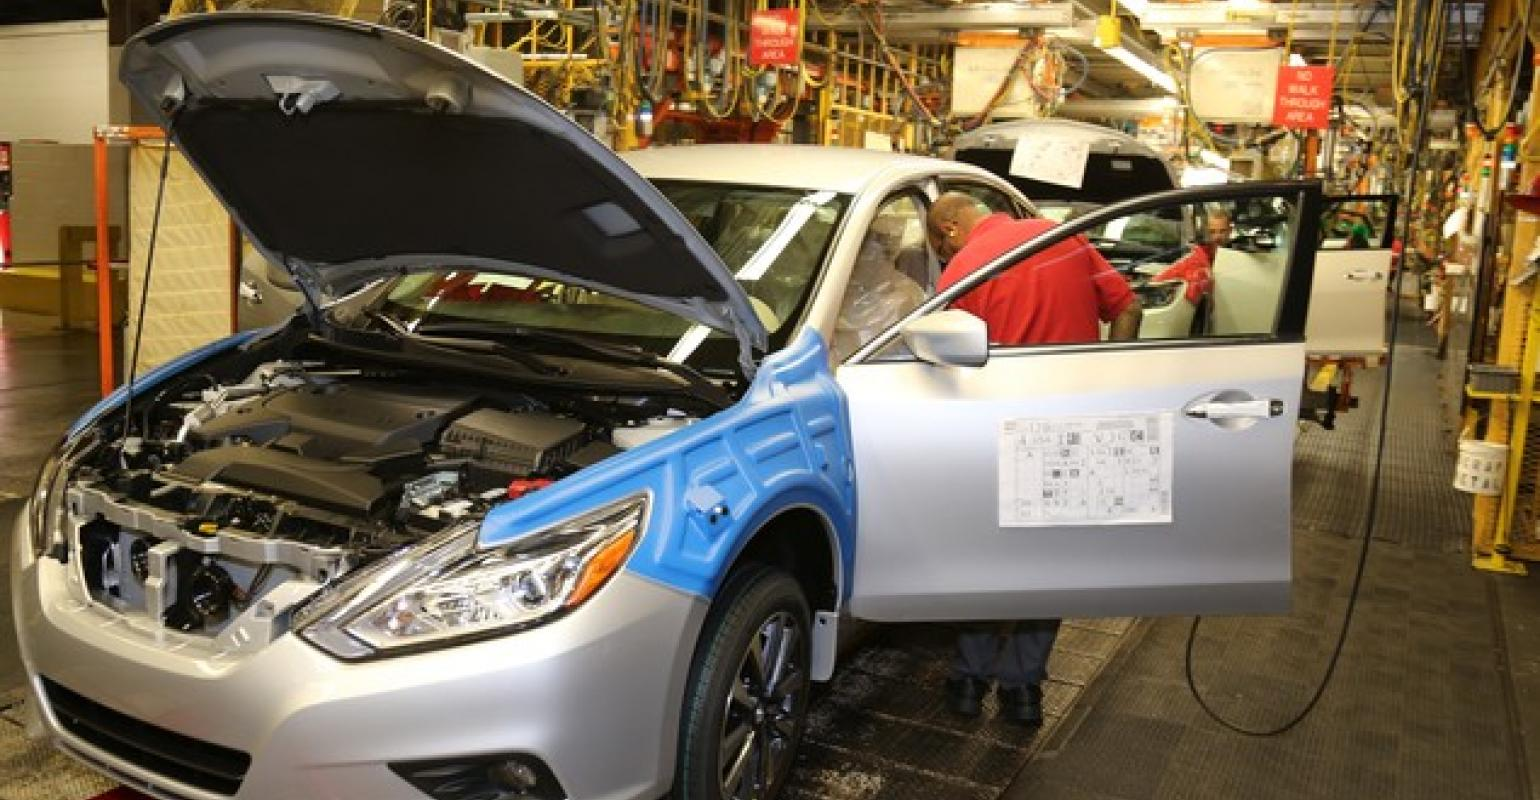 growth eyed as \u002716 altima production ramps up wardsautogrowth eyed as \u002716 altima production ramps up